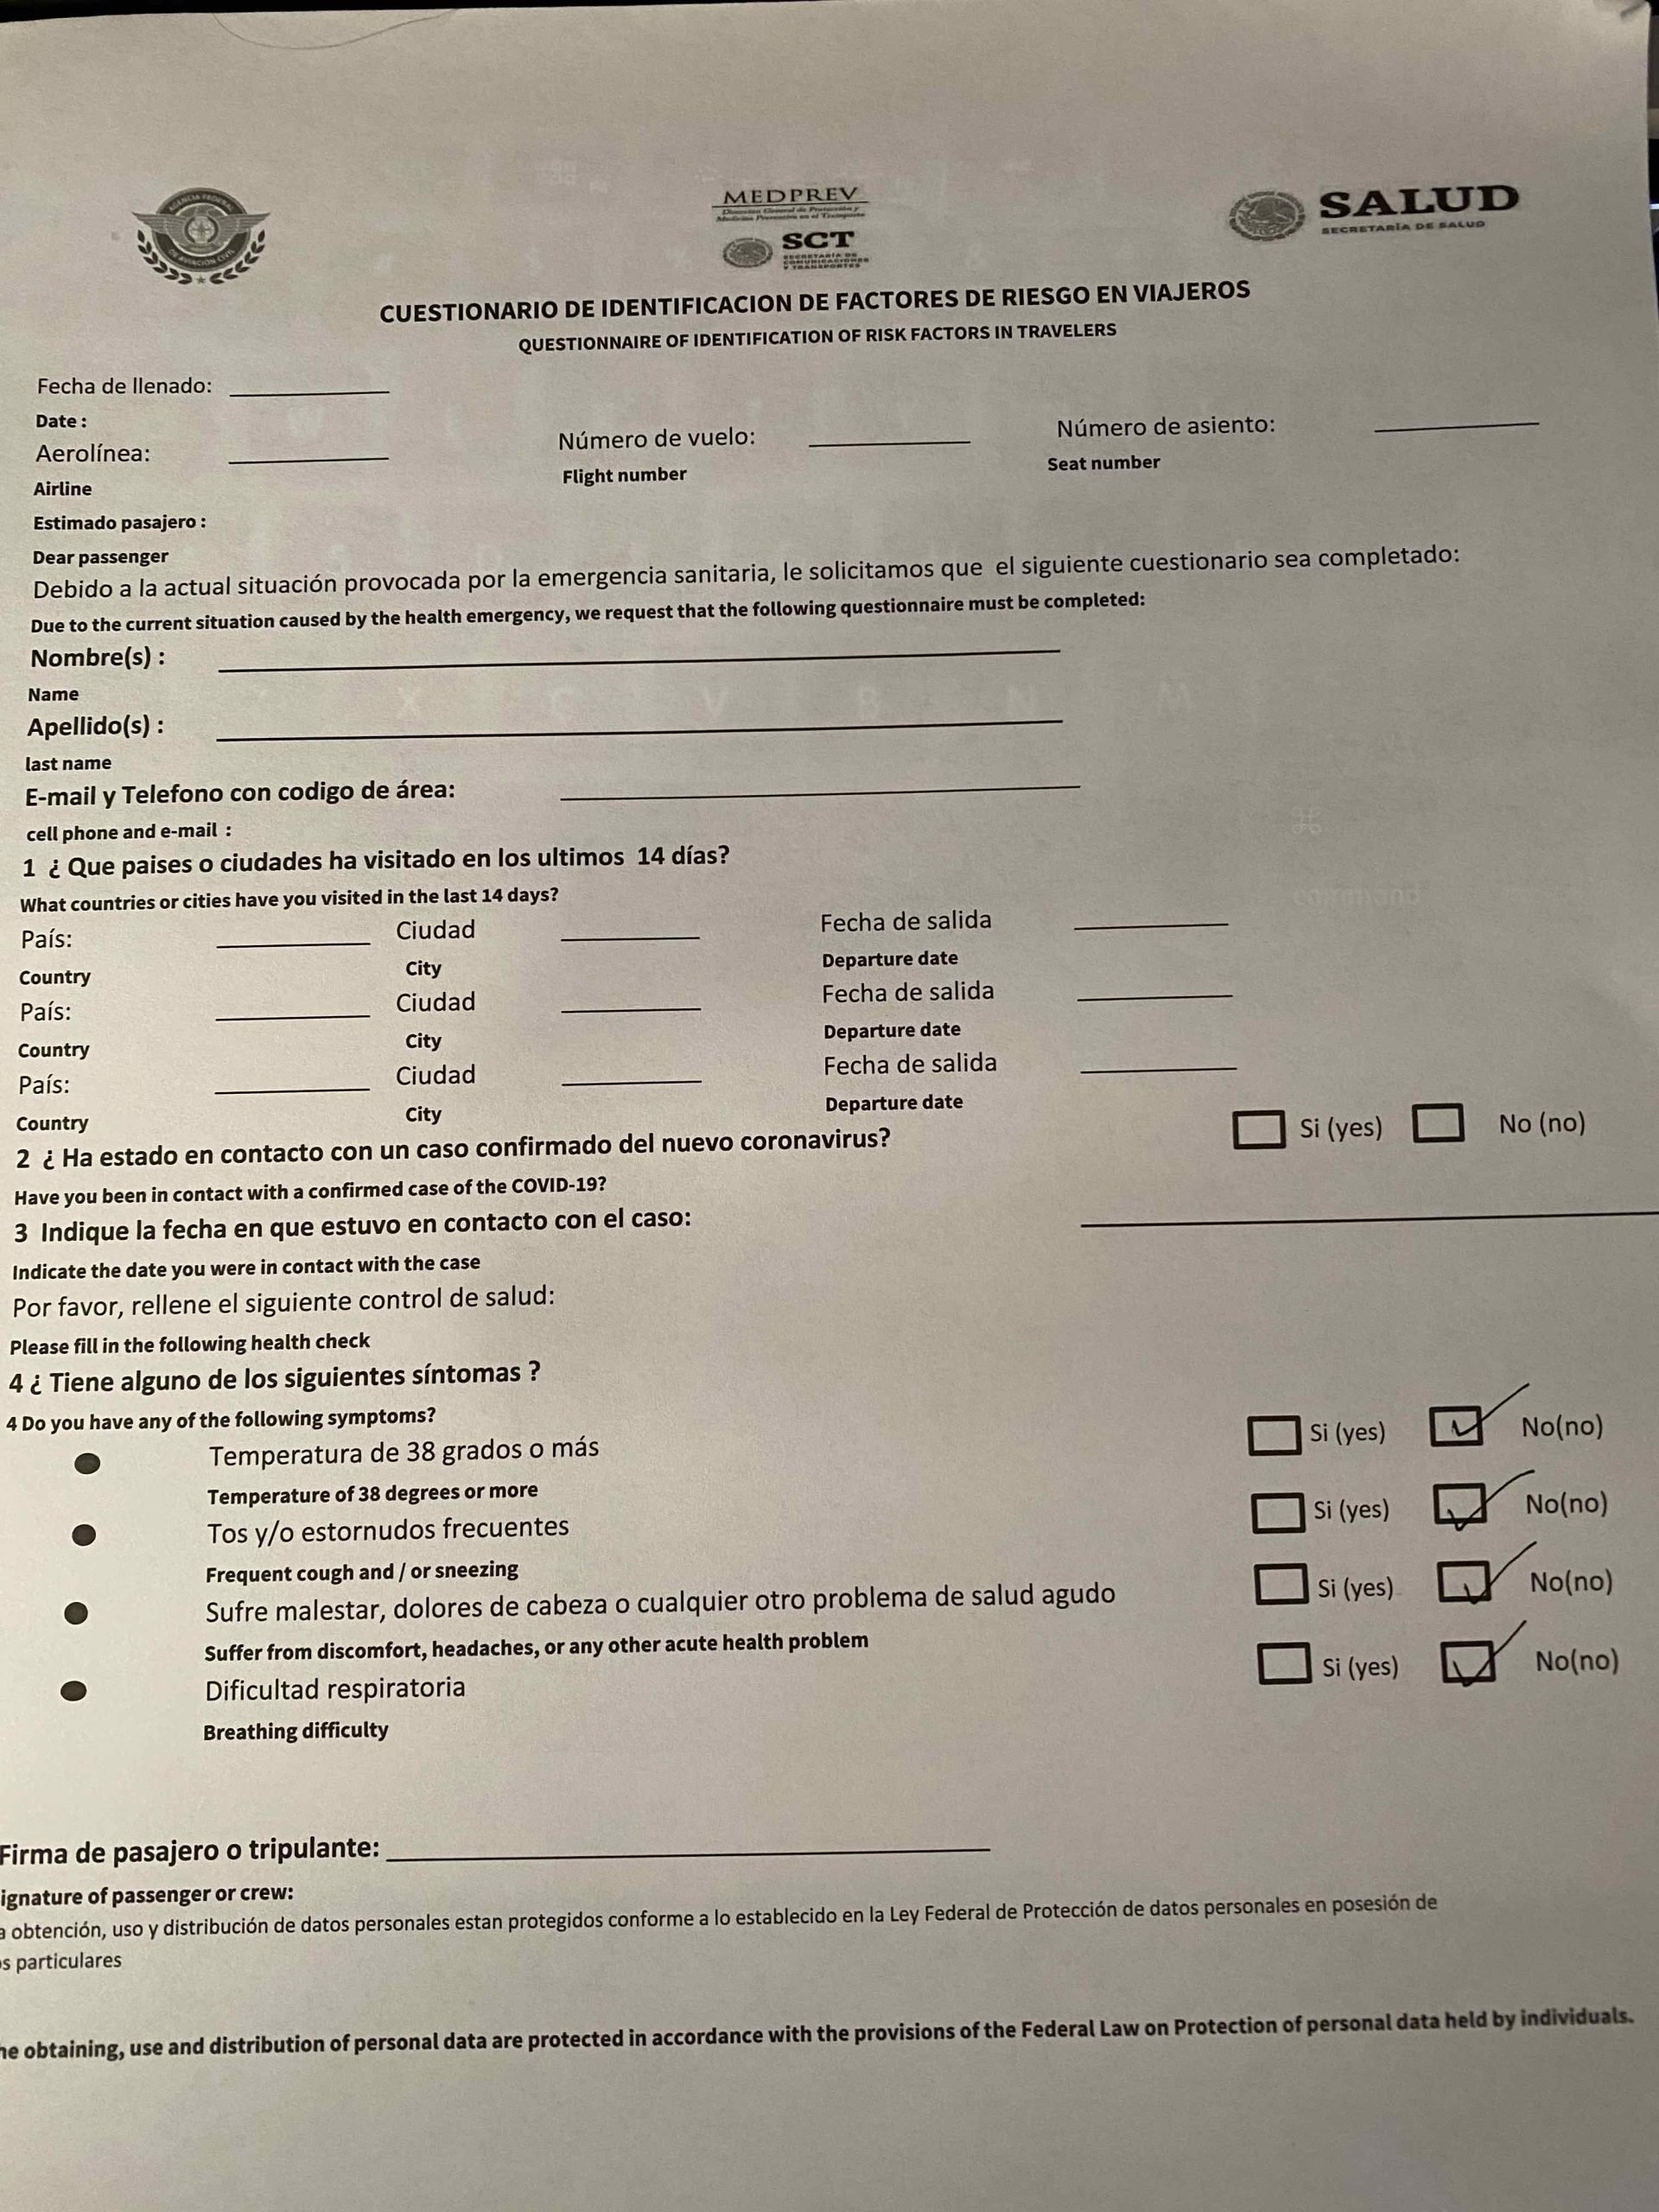 Covid-19 Health form to be filled out before taking any flight in Mexico either domestic or internaitonal